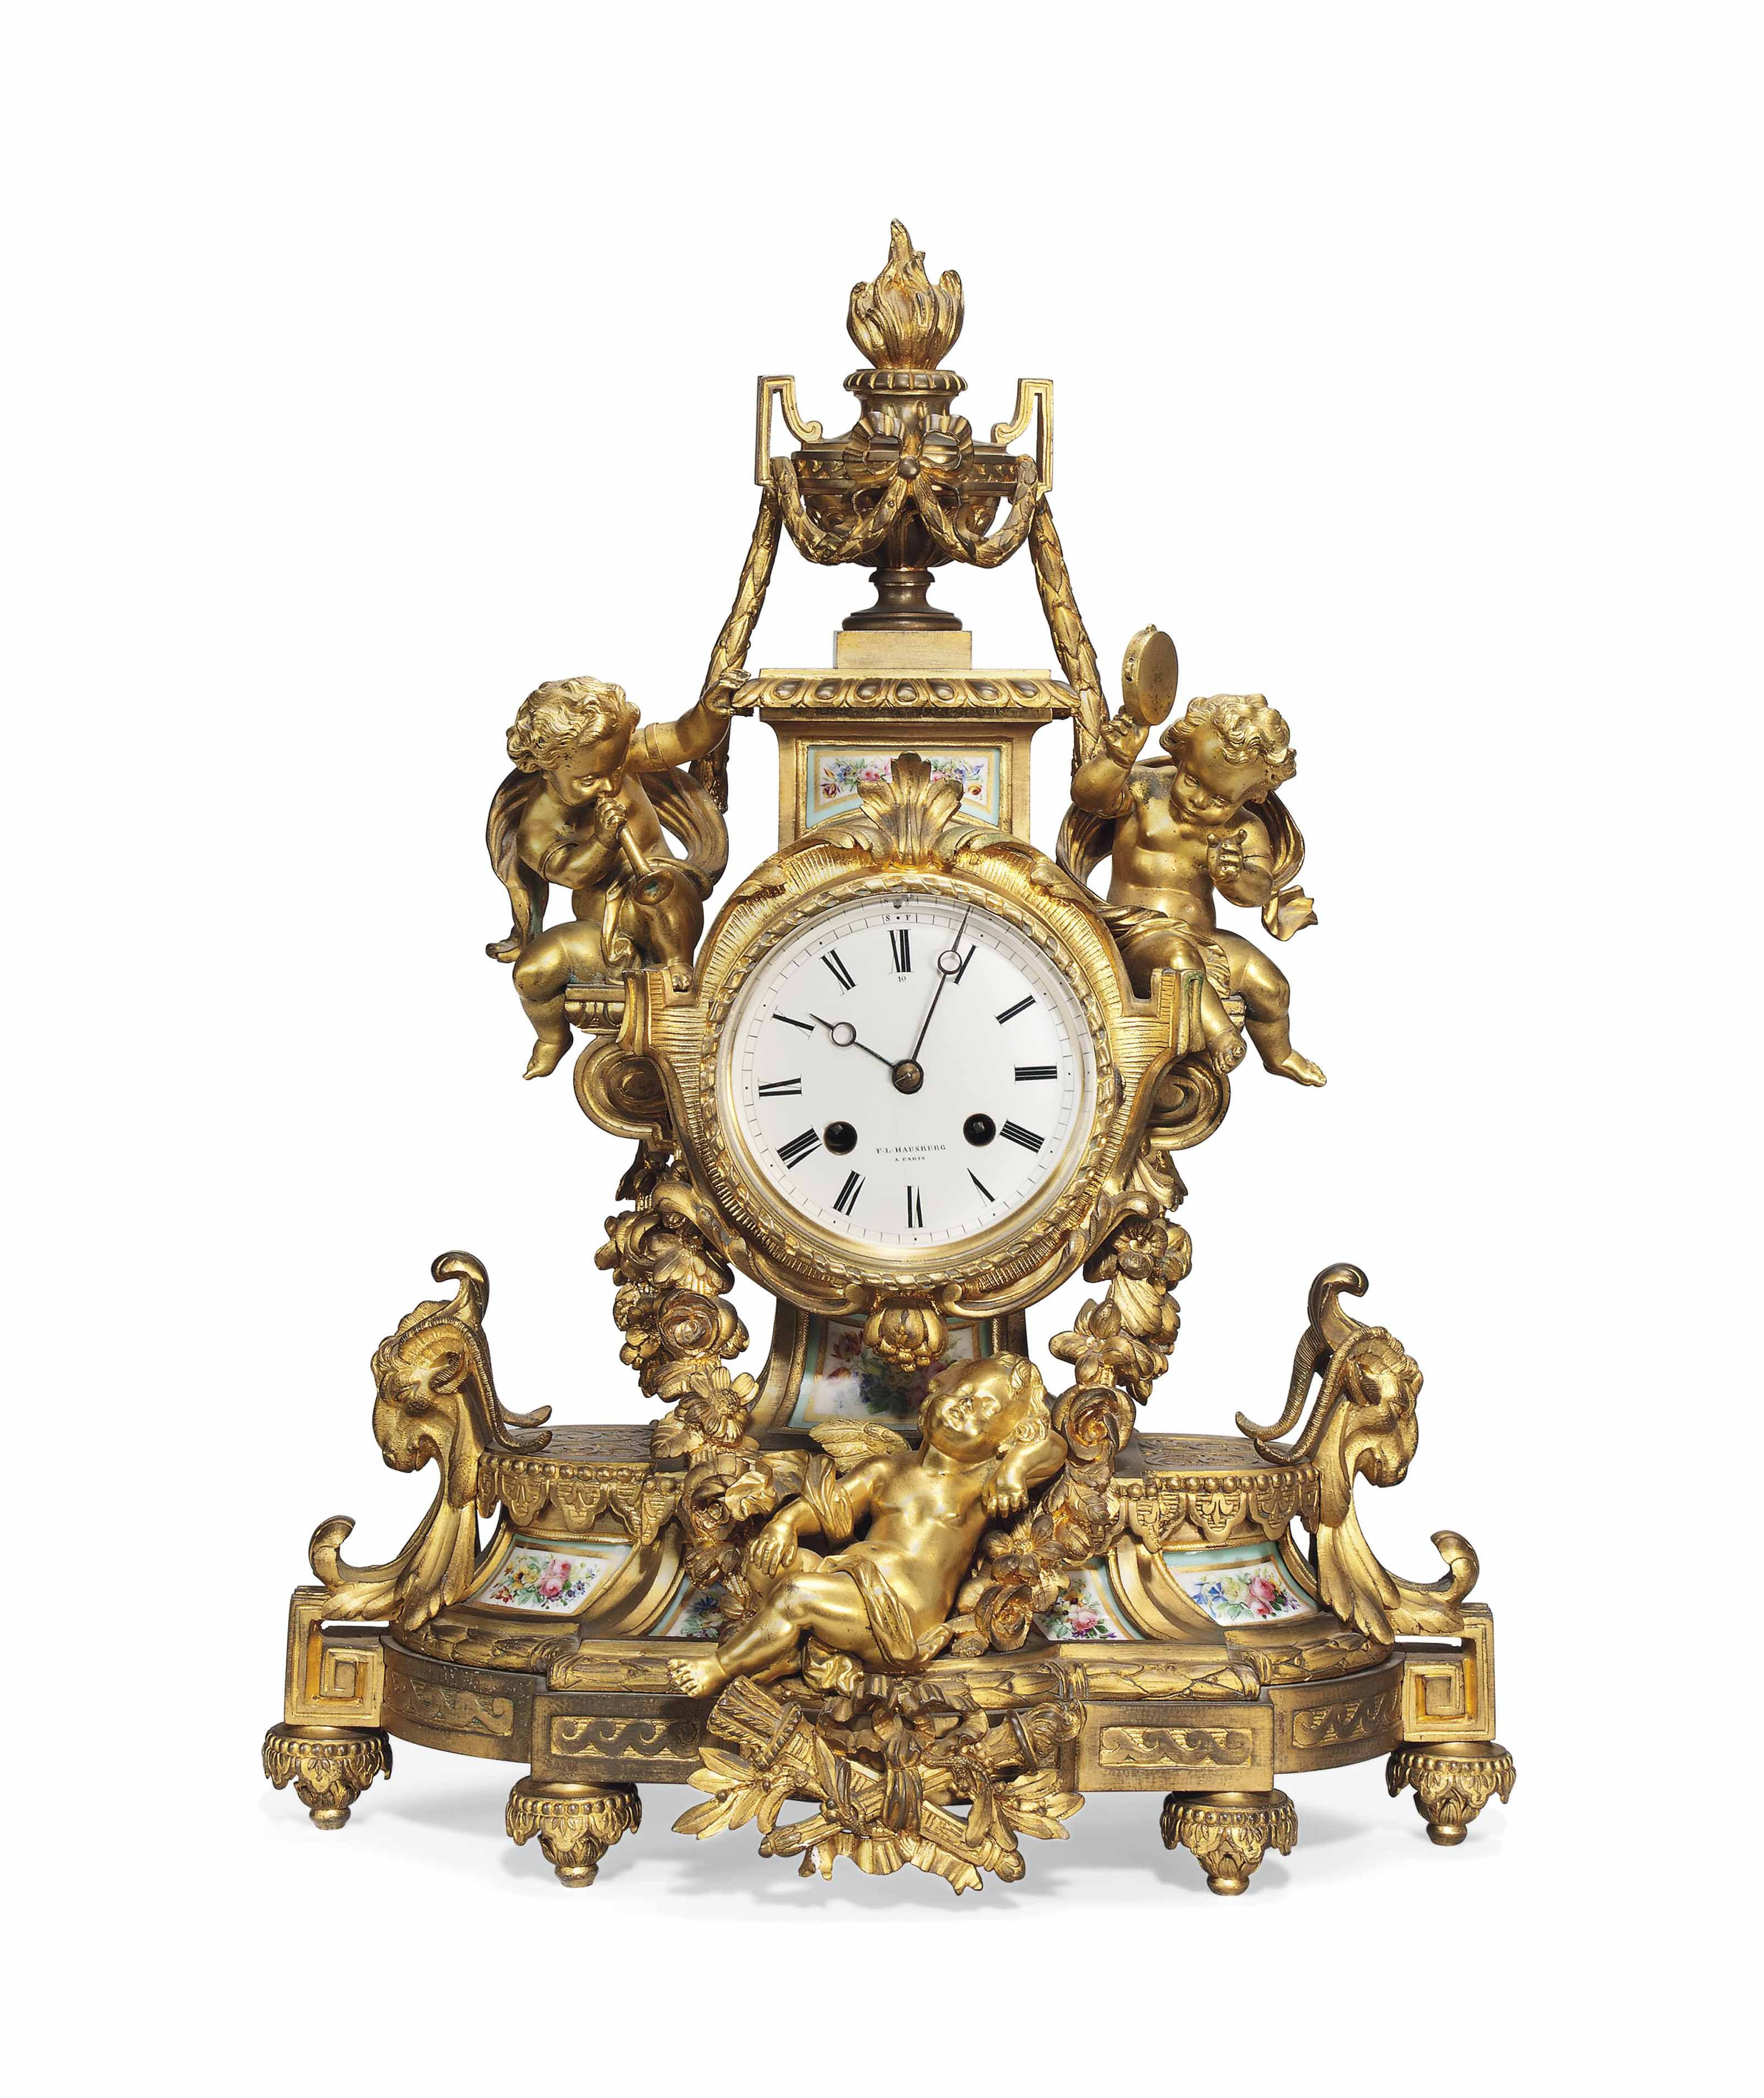 A FRENCH ORMOLU AND PORCELAIN-MOUNTED STRIKING MANTEL CLOCK